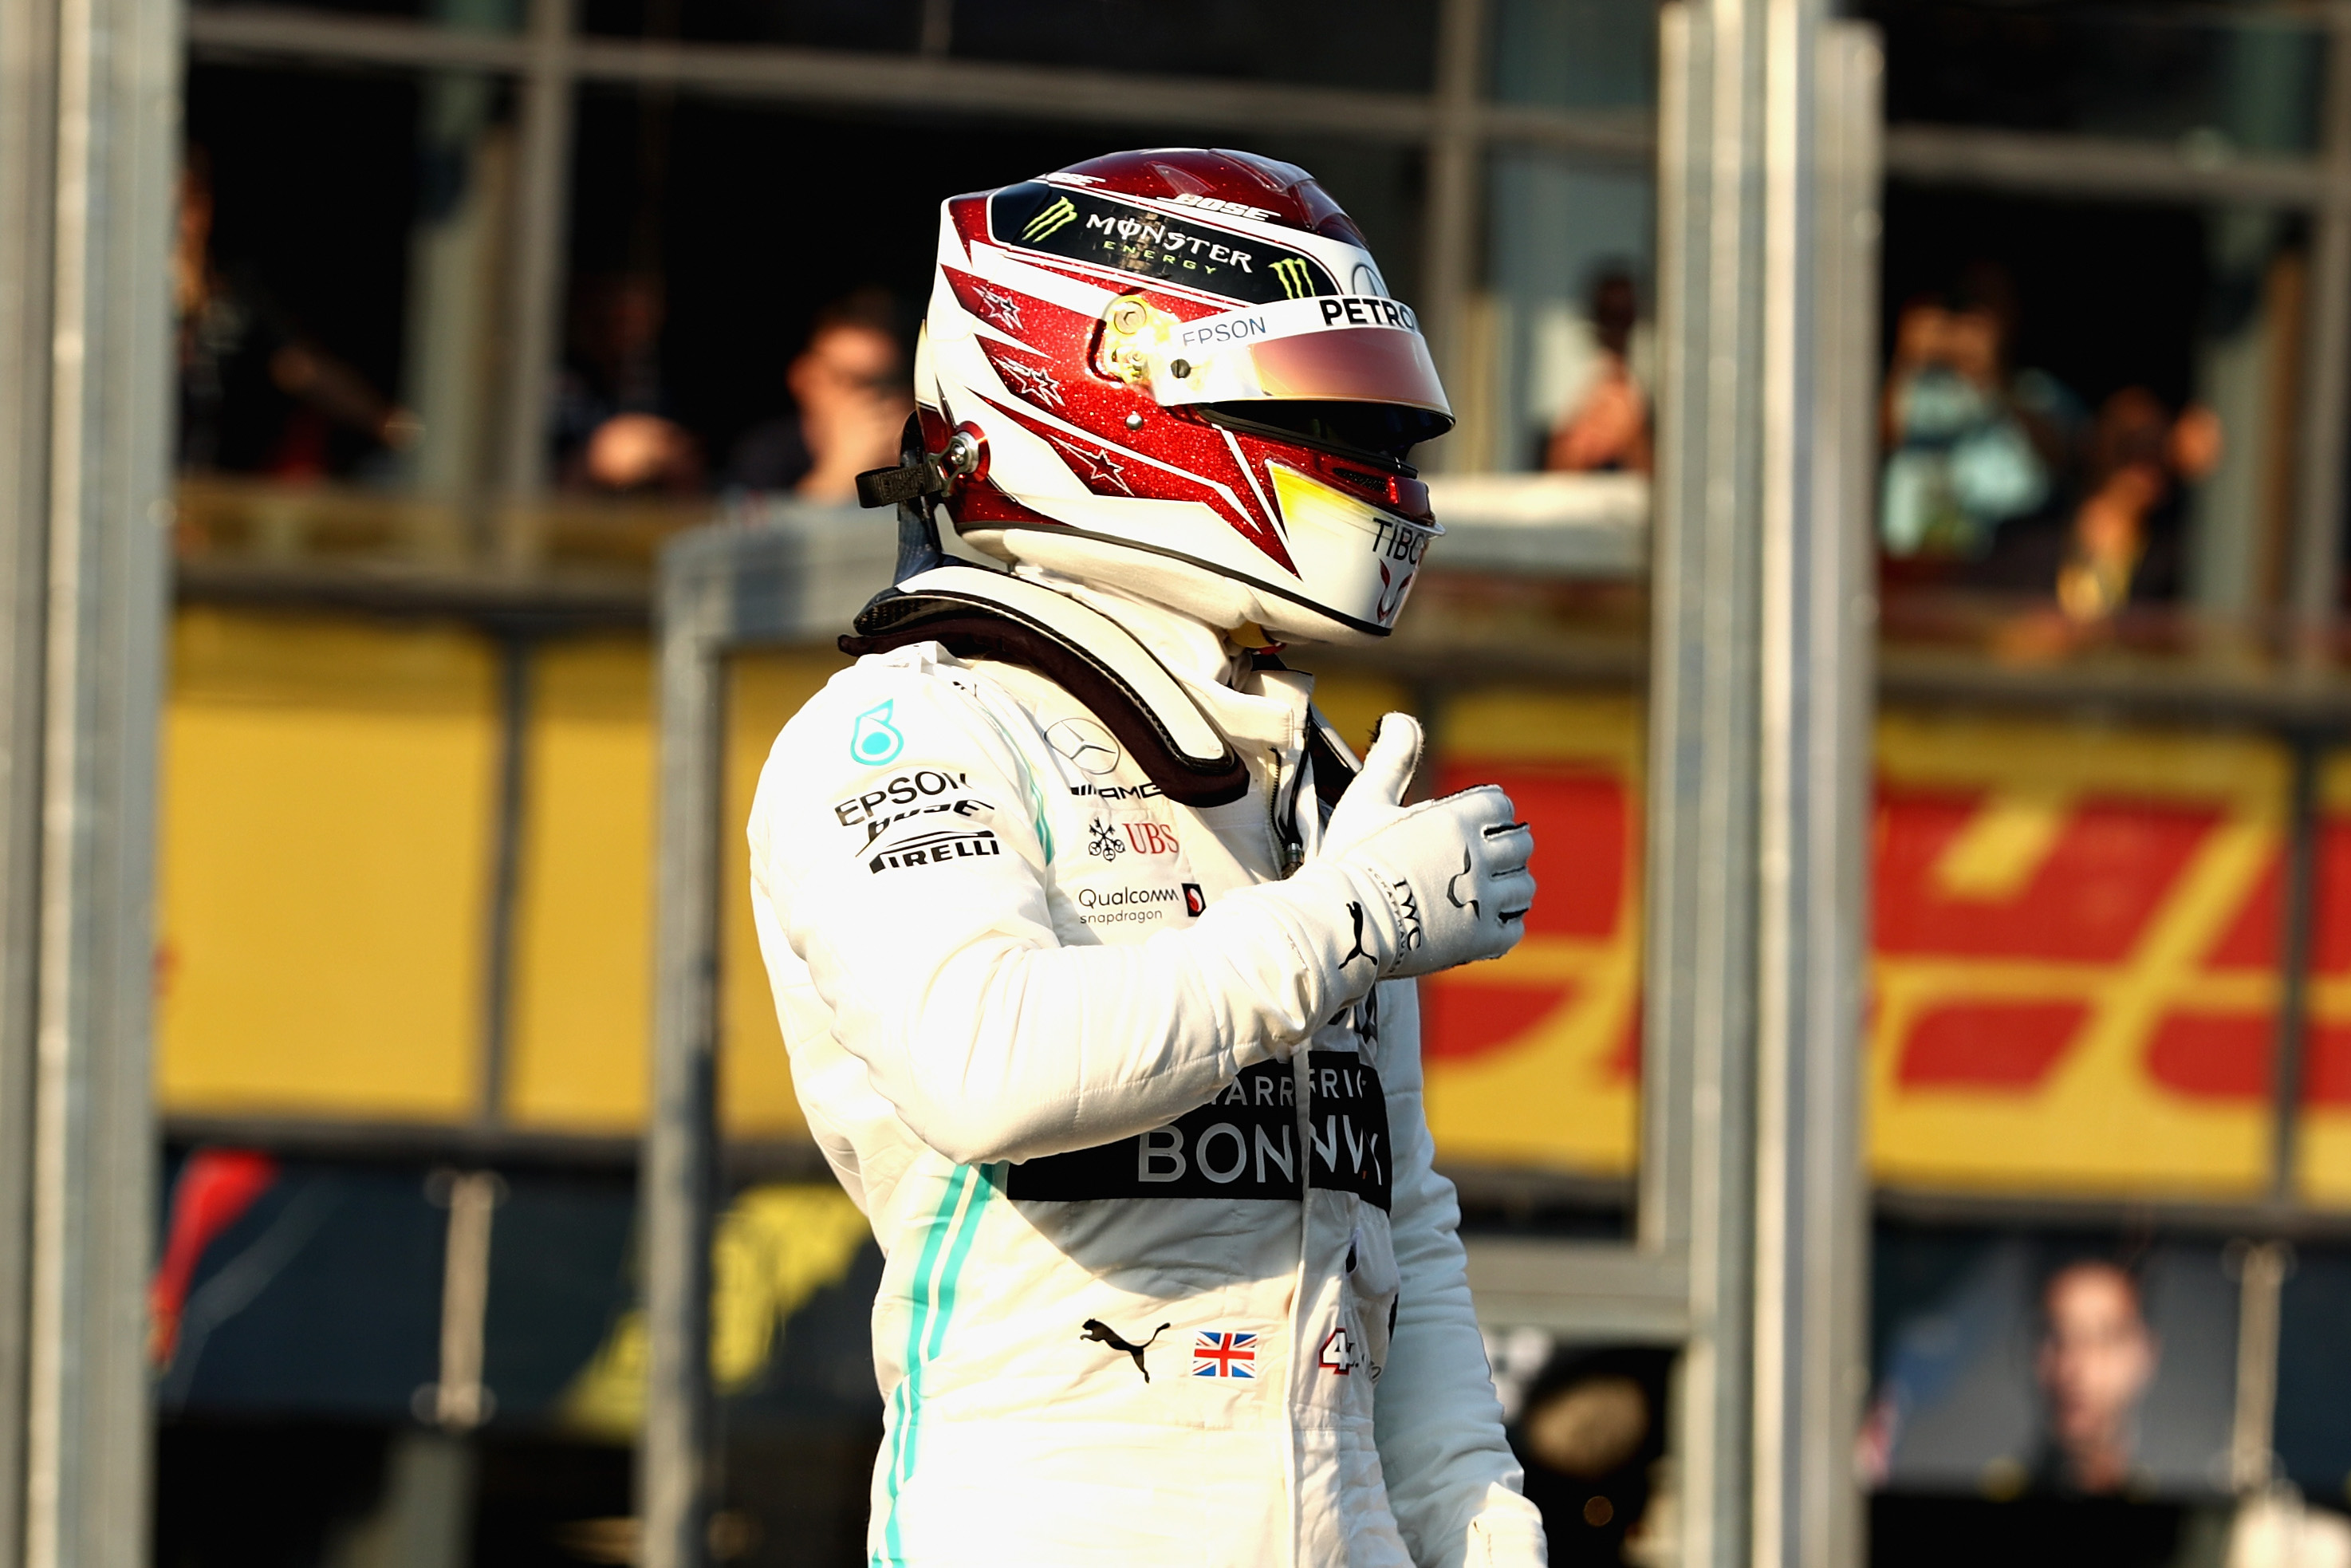 Hamilton erobert Pole Position in Melbourne